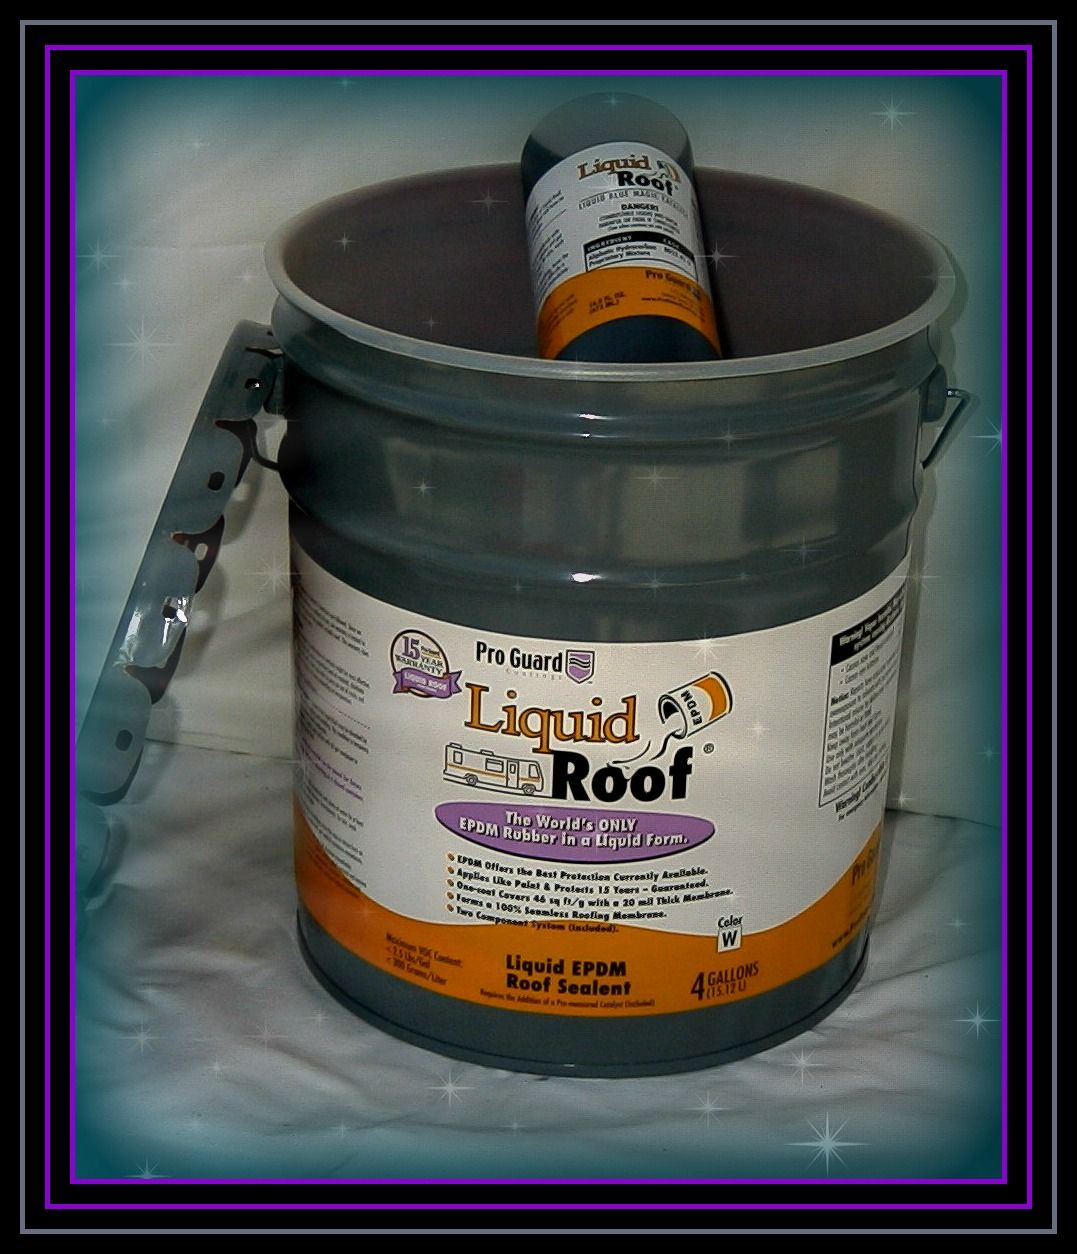 A EPDM coatings manufactured by Pro Guard coatings called